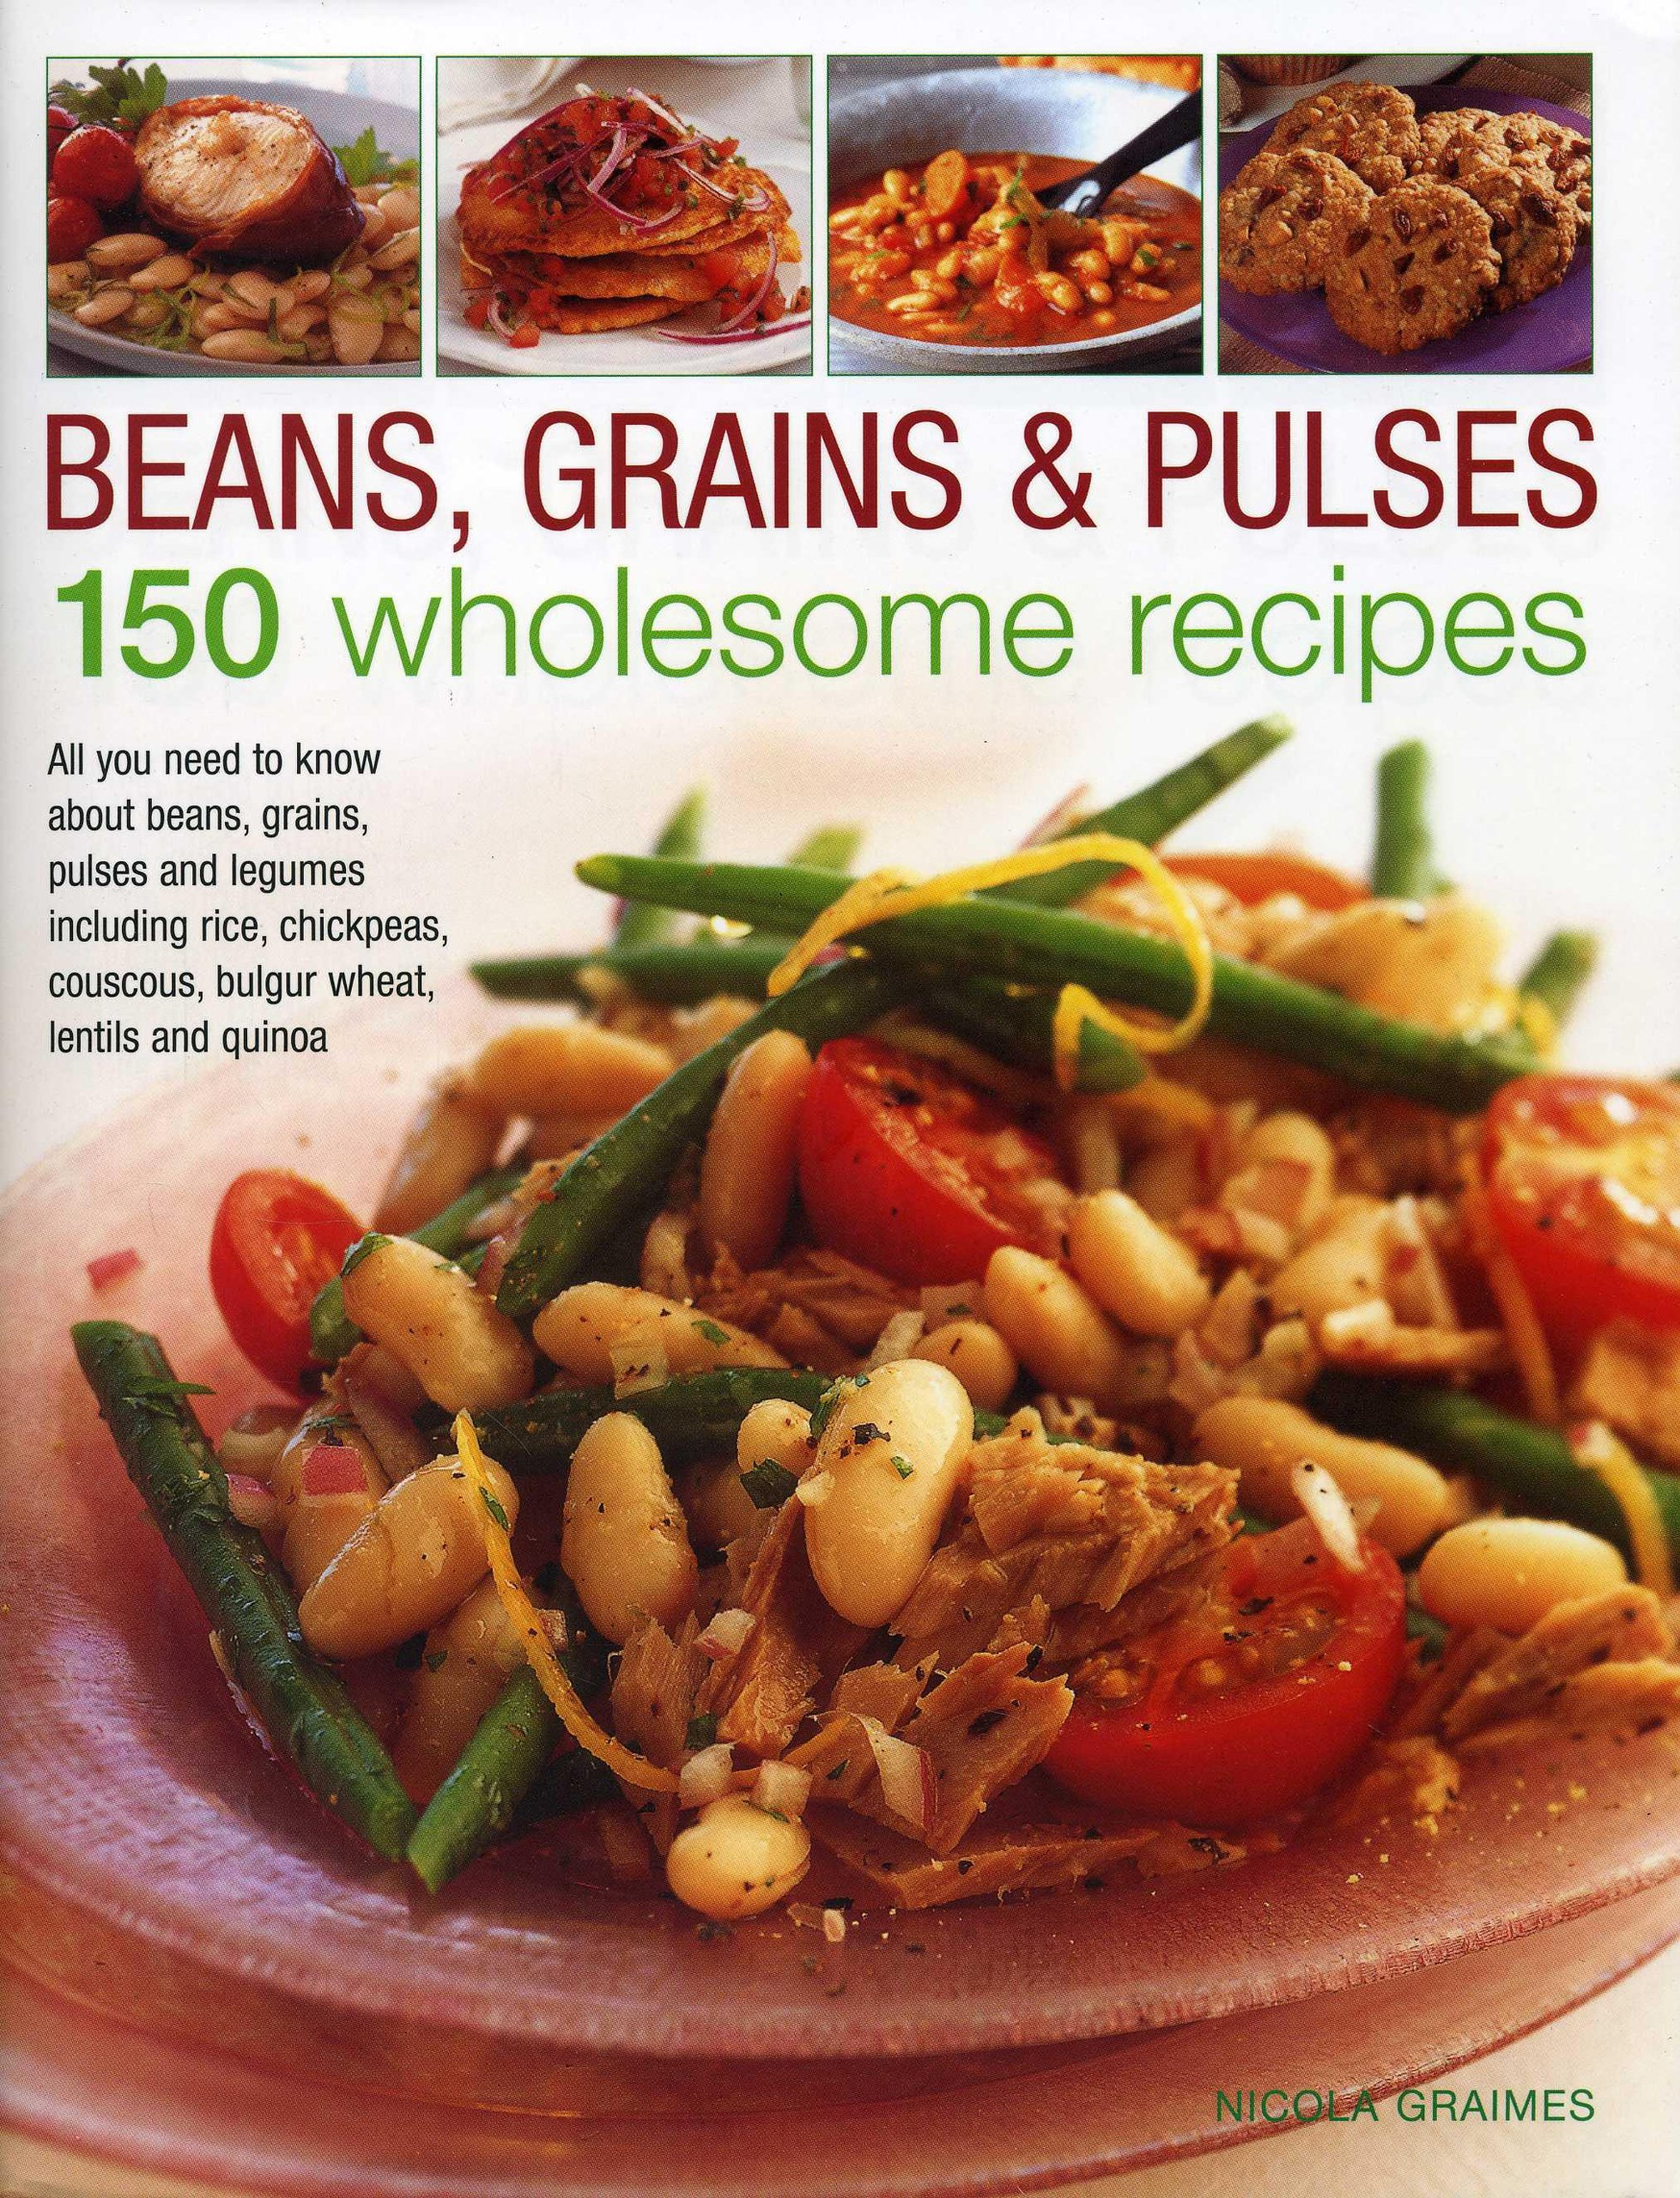 Beans, Grains & Pulses: 150 Wholesome Recipes: All You Need To Know About  Beans, Grains, Pulses And Legumes Including Rice, Chickpeas, Couscous,